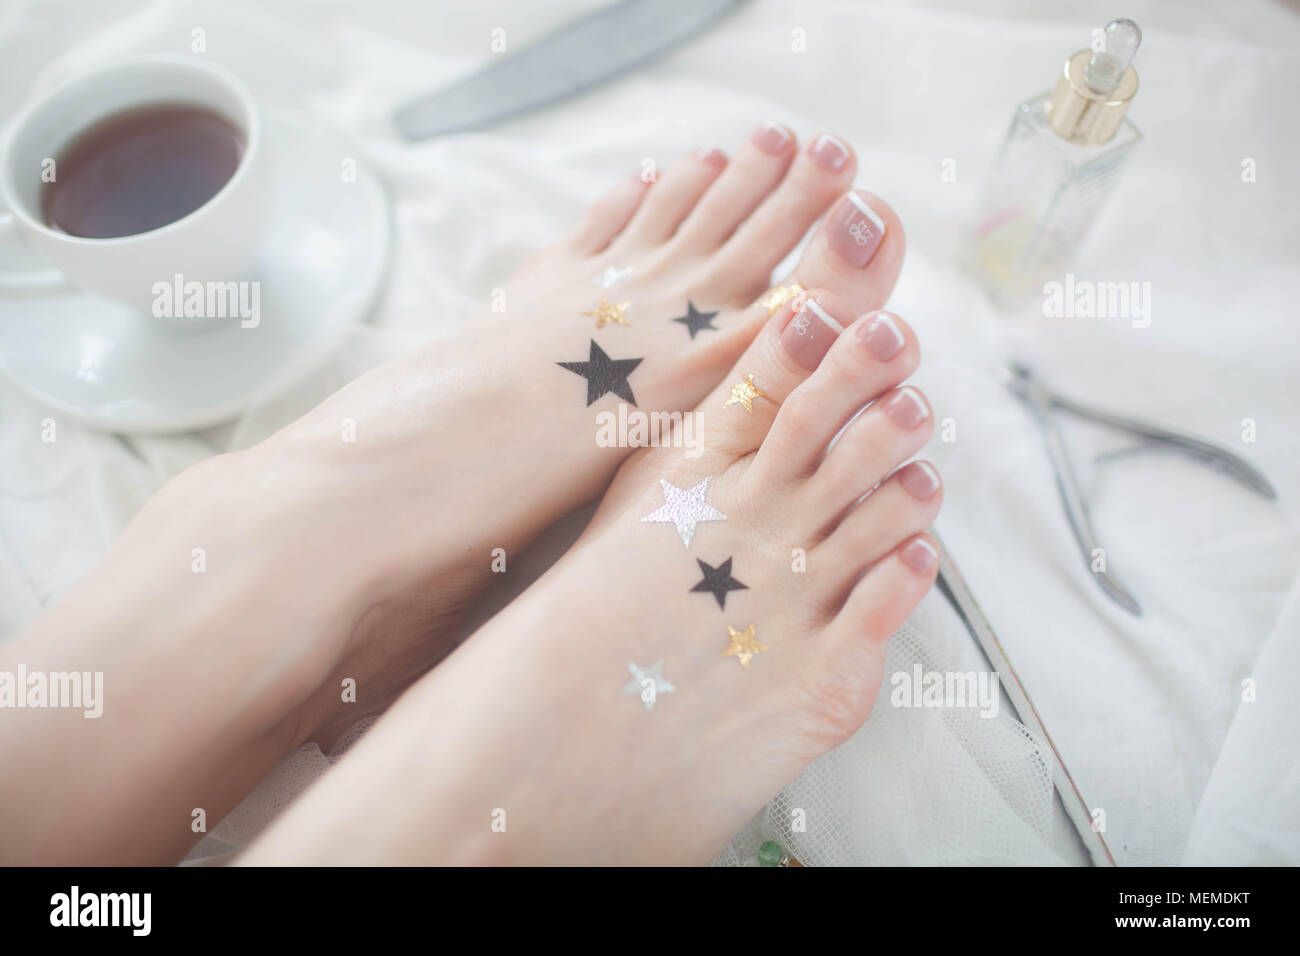 Beautiful French pedicure on a white background. - Stock Image